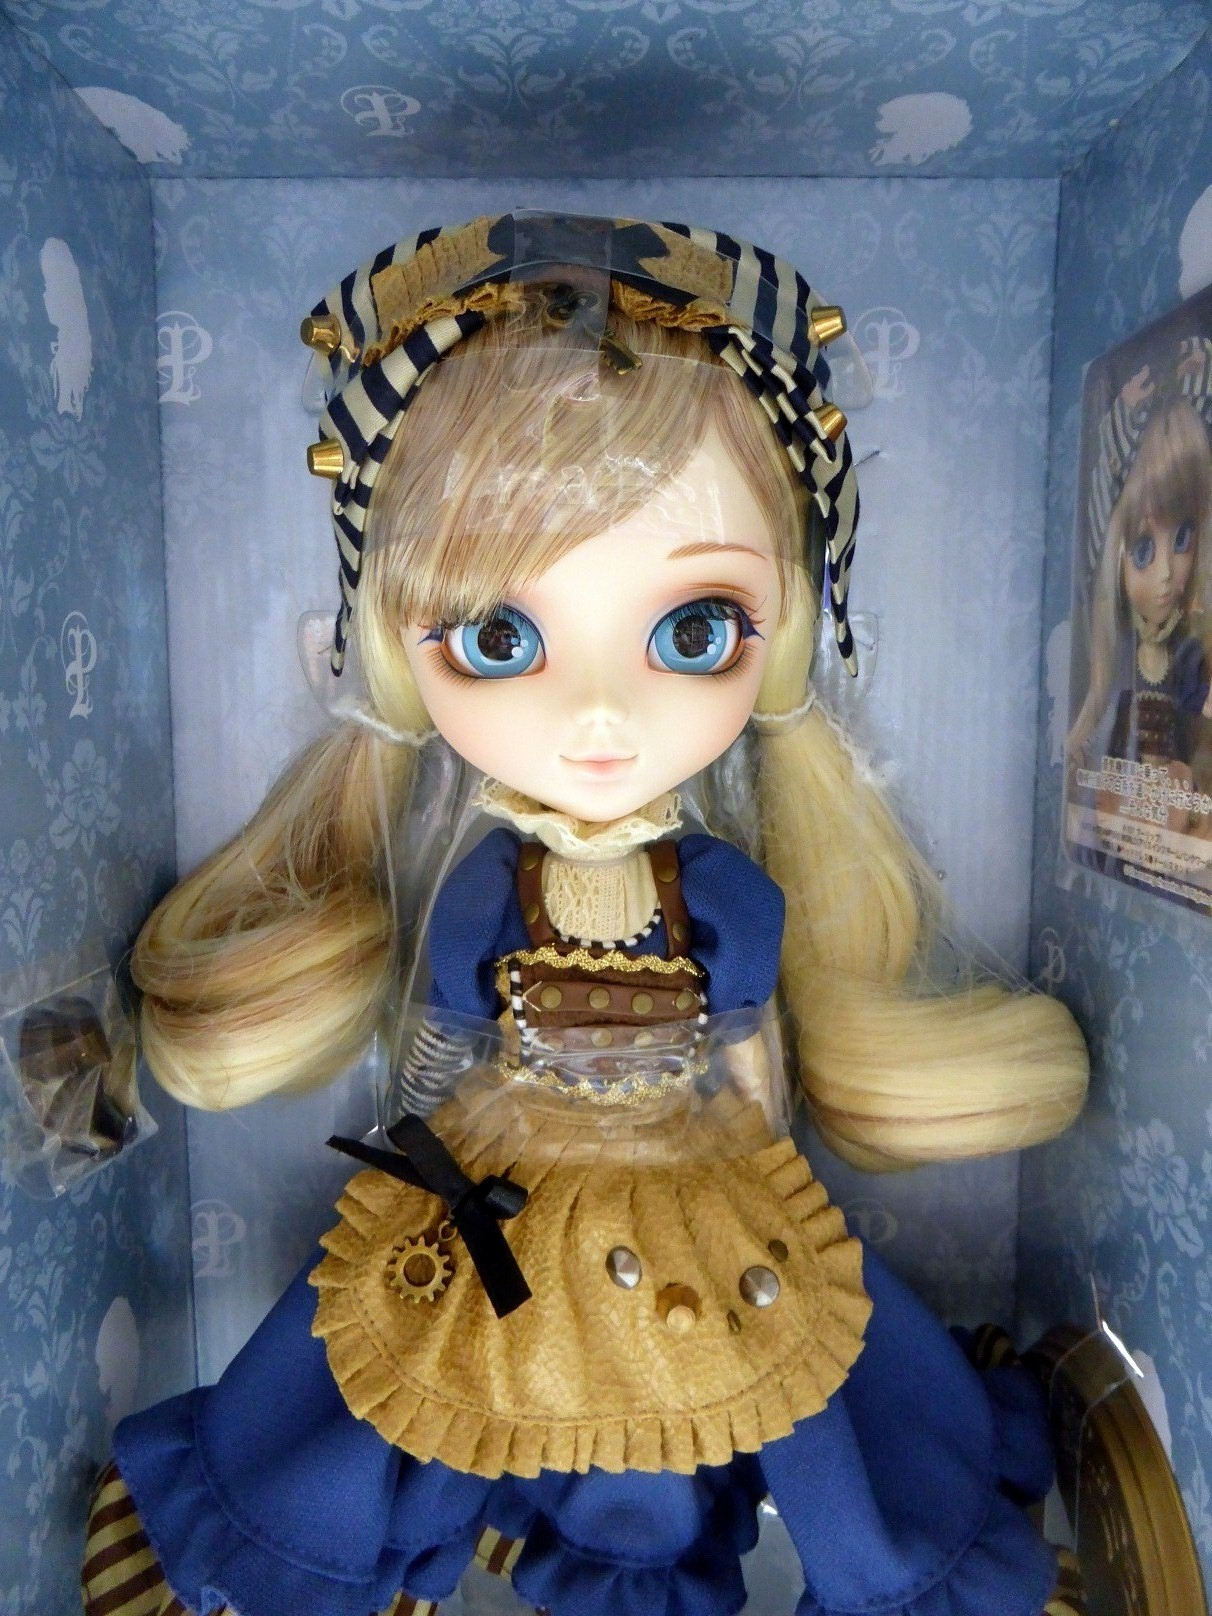 [Juin 2015] Pullip Alice in Steampunk World - Page 2 P-151_1_1